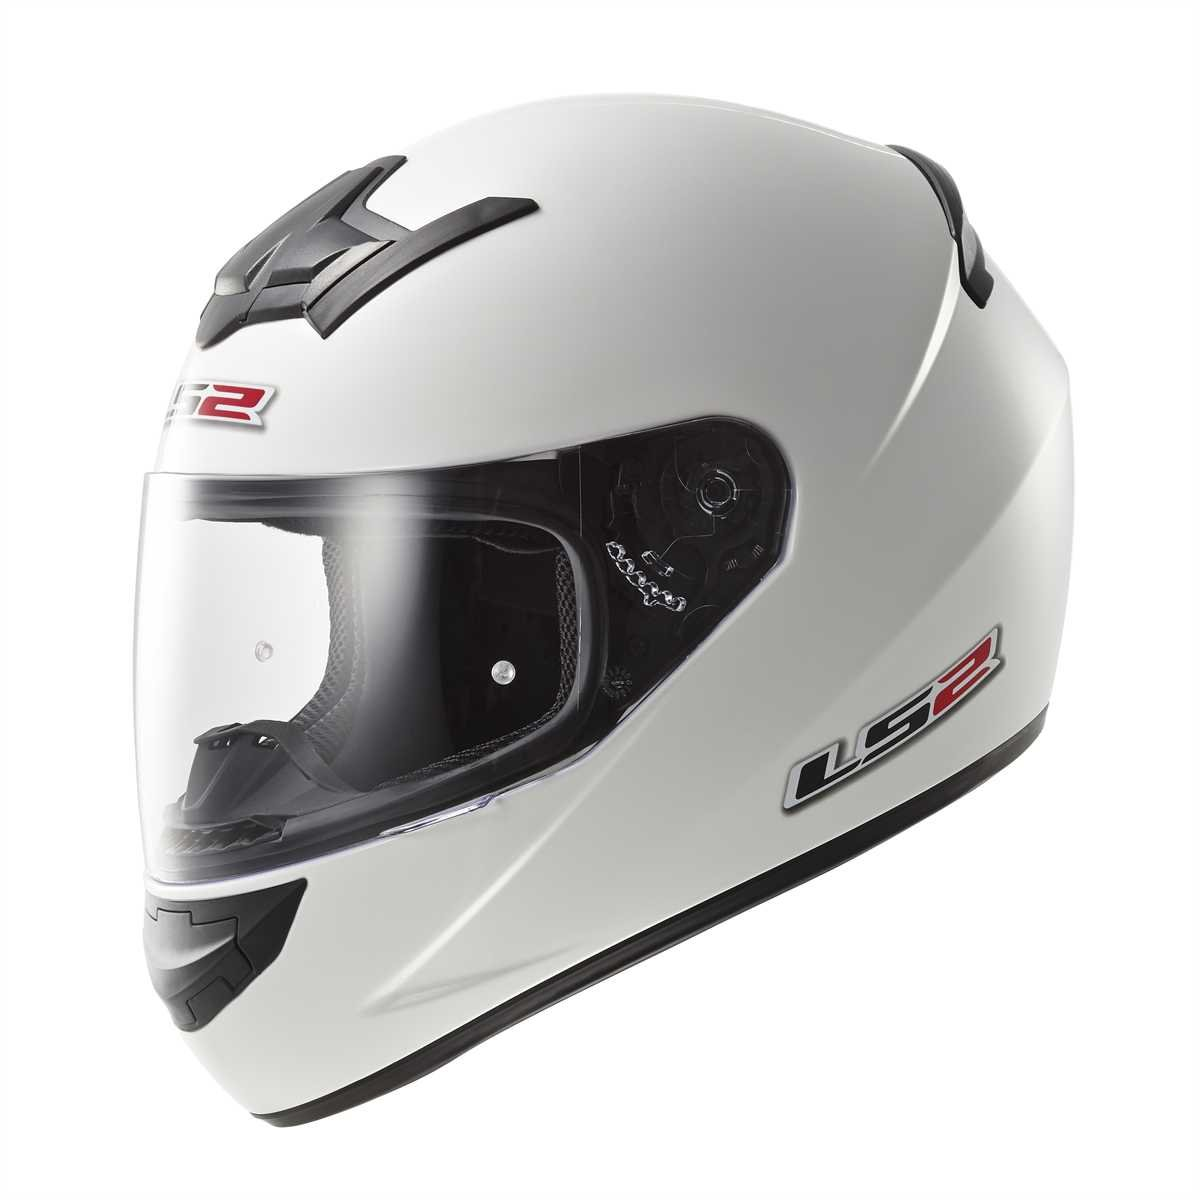 53//54 Cr/áneo Negro LS2 Casco Integral XS